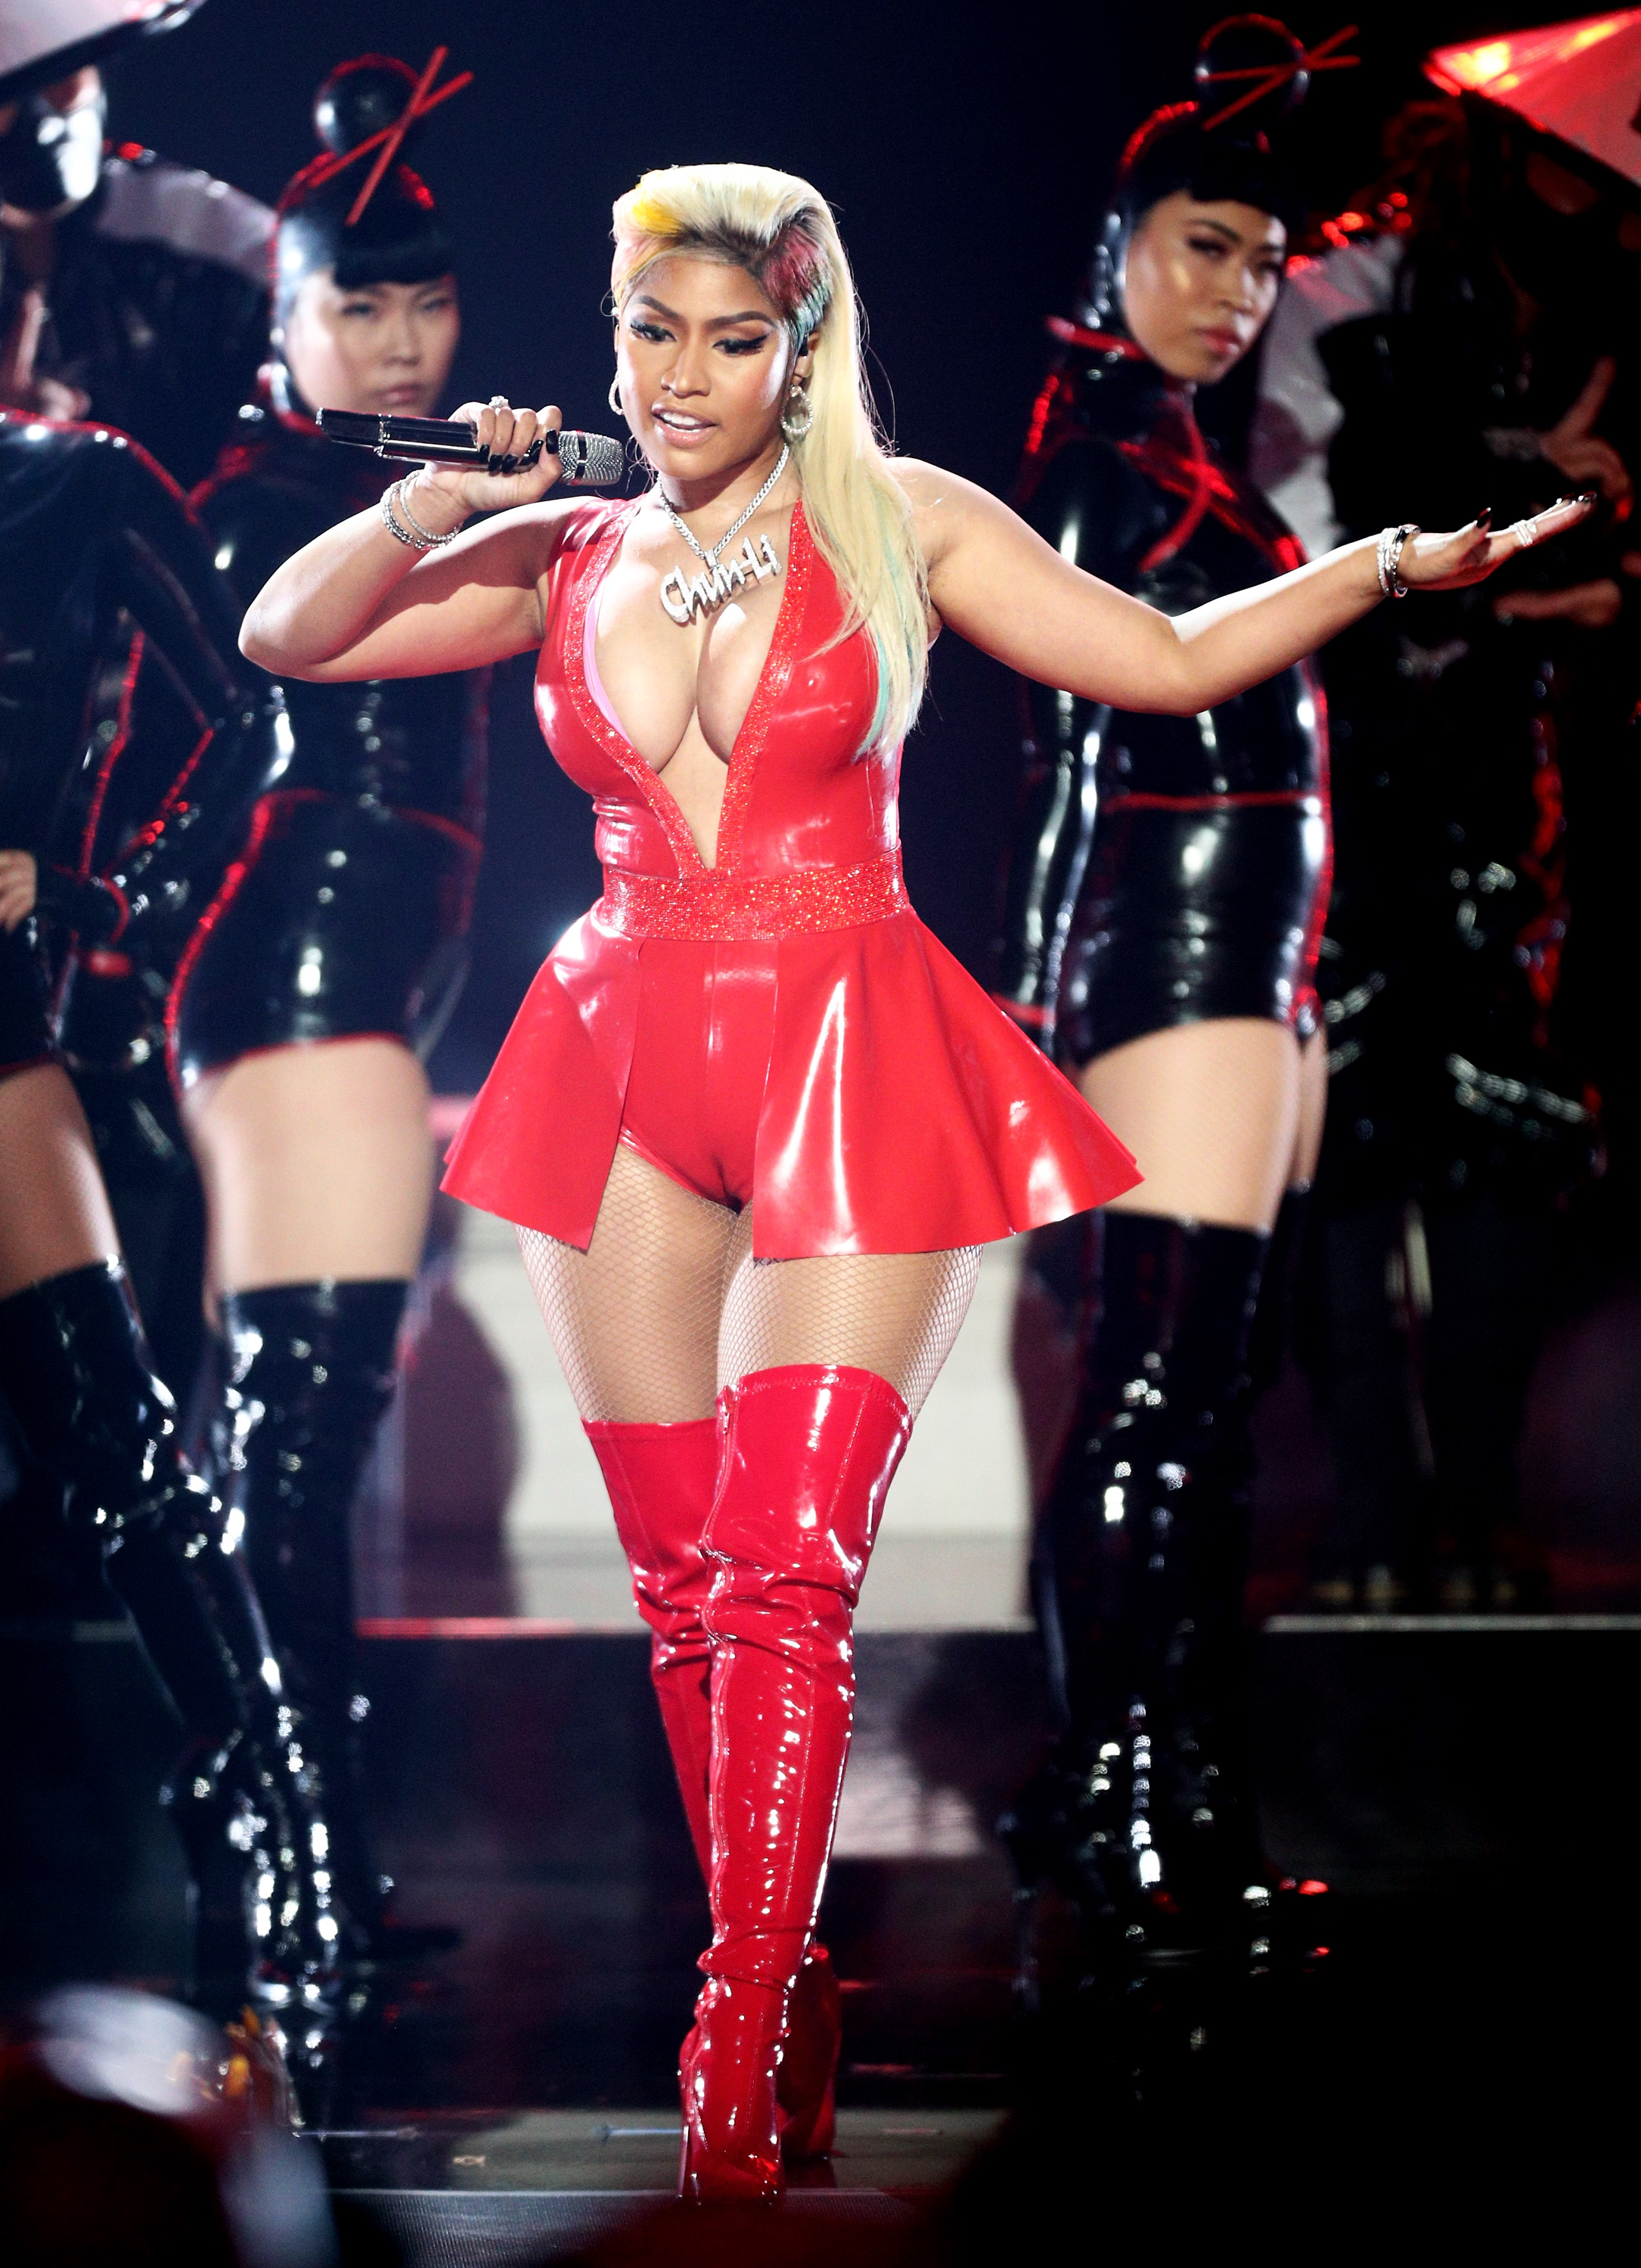 Nicki Minaj performs onstage at the 2018 BET Awards at Microsoft Theater on June 24, 2018, in Los Angeles, California. (Getty Images)